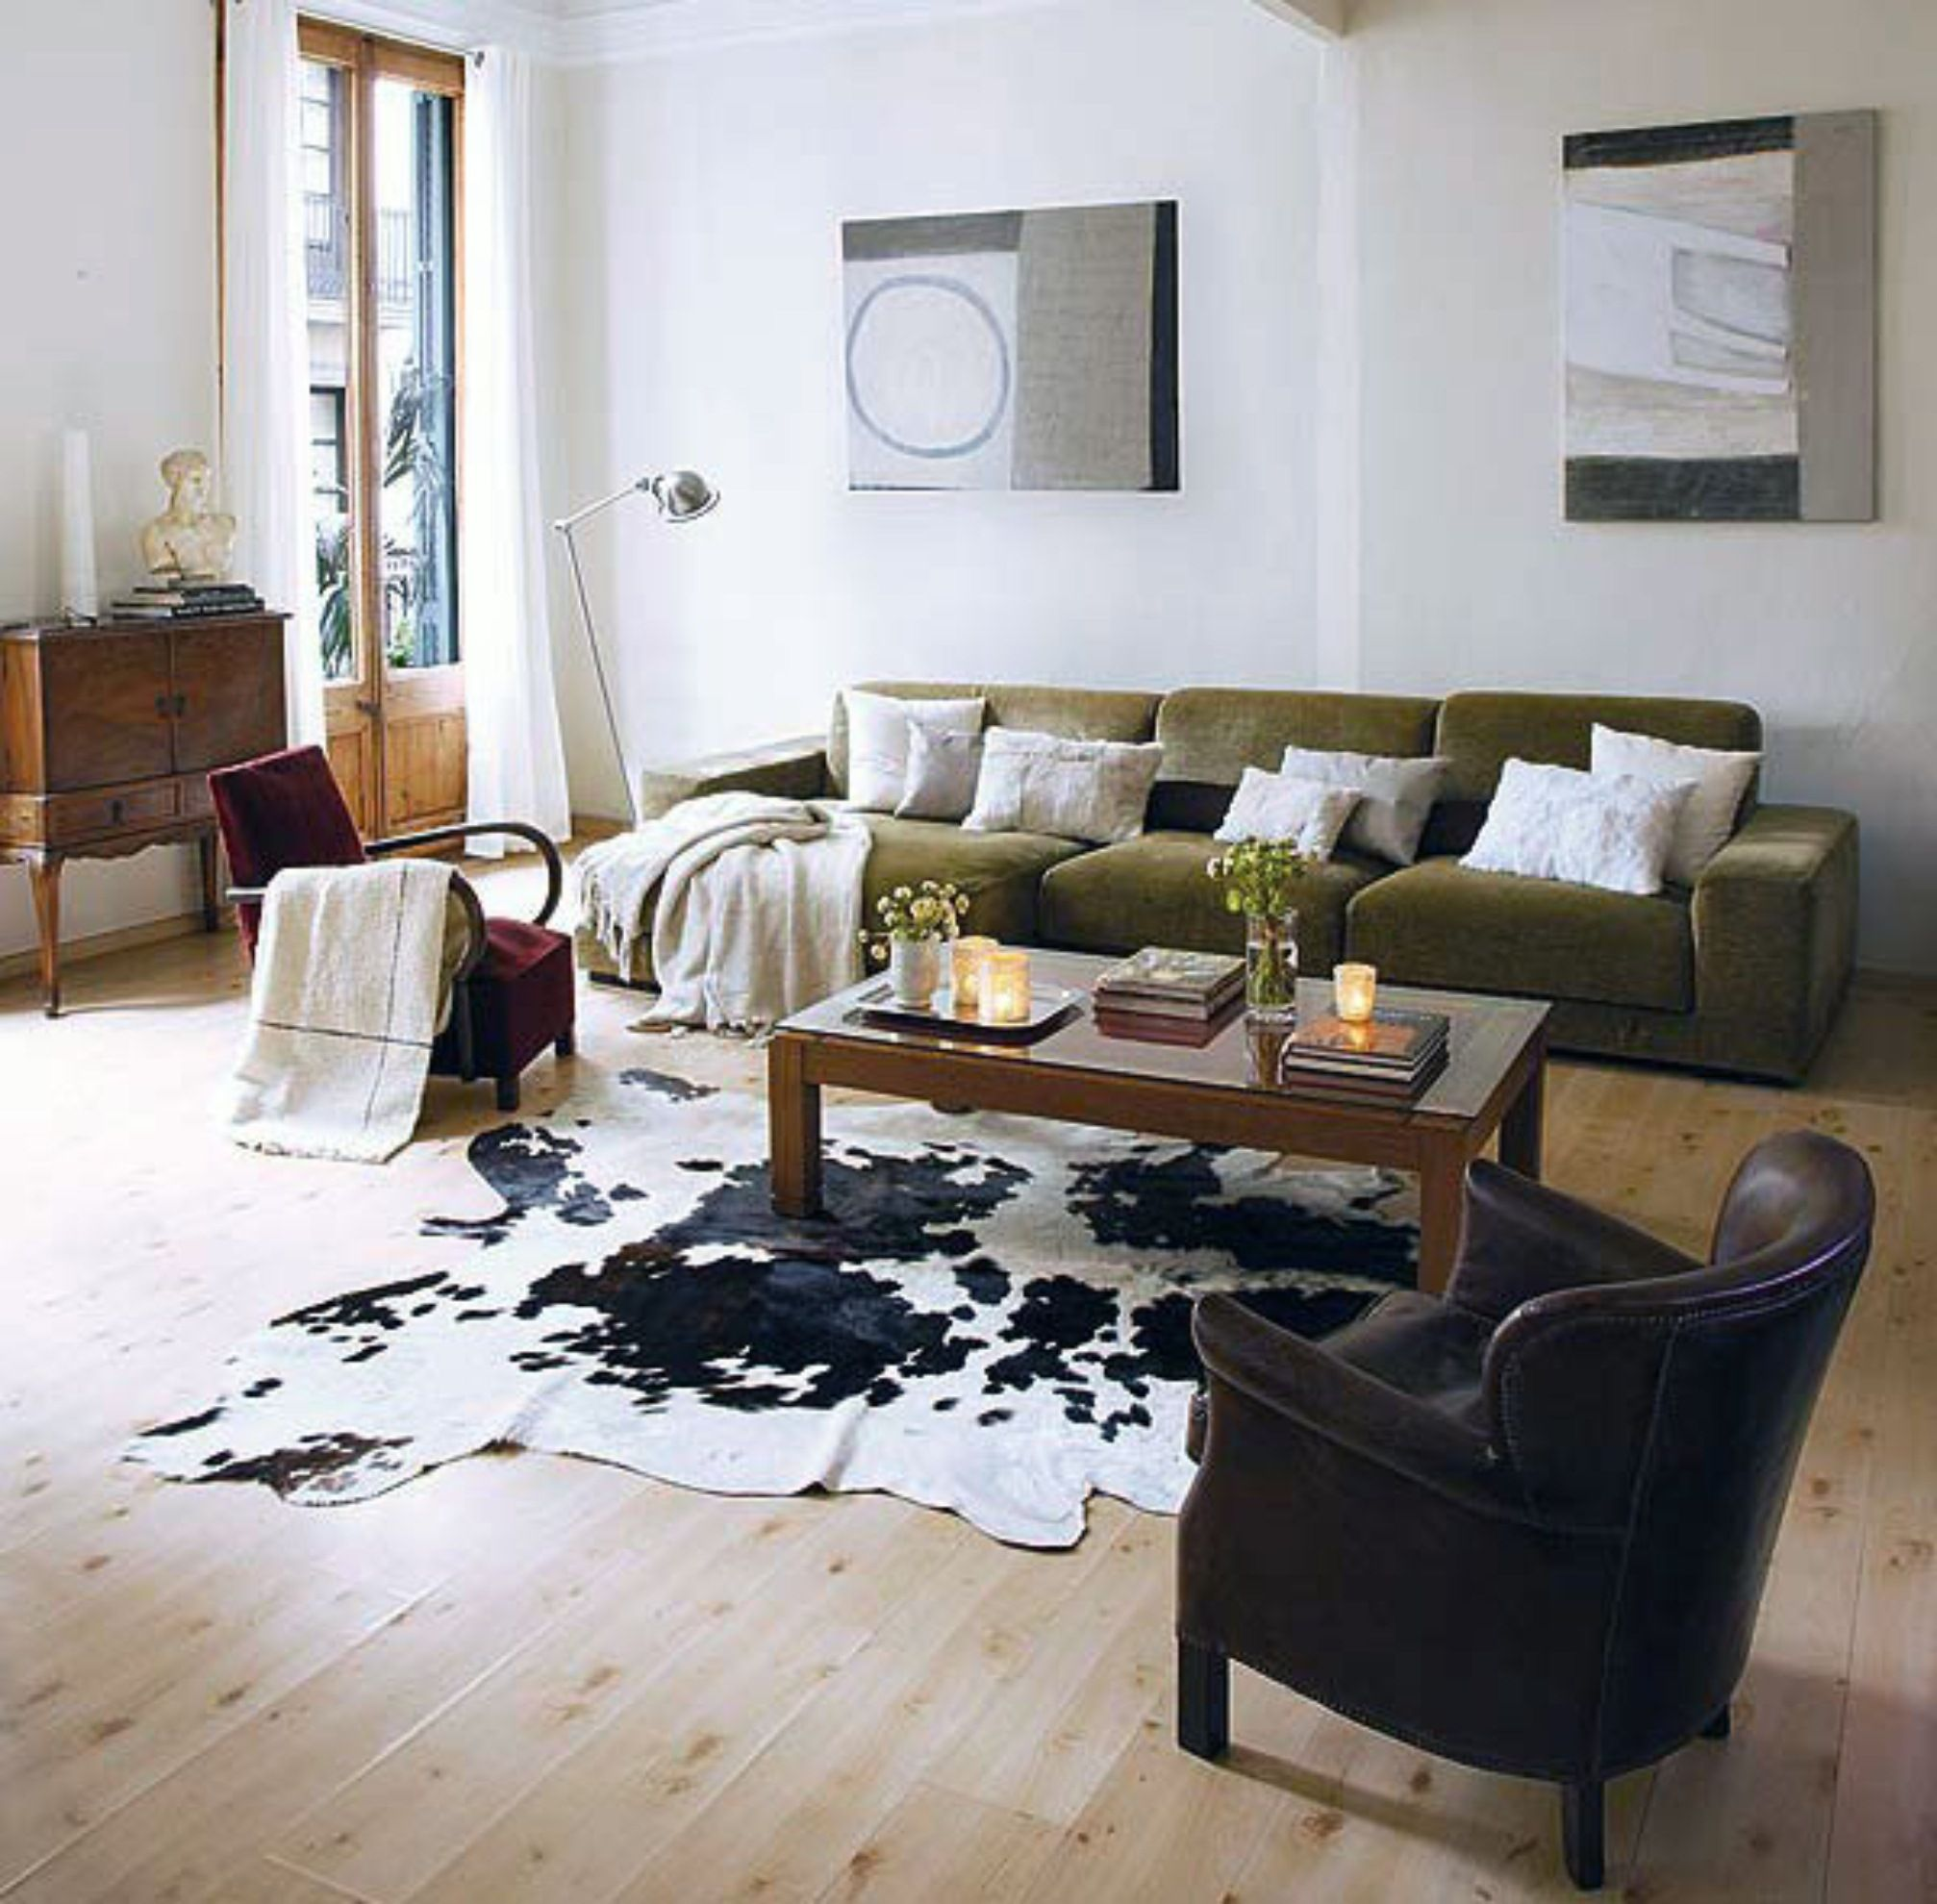 Decorating unique cow hide rug for inspiring interior for Living room rug ideas